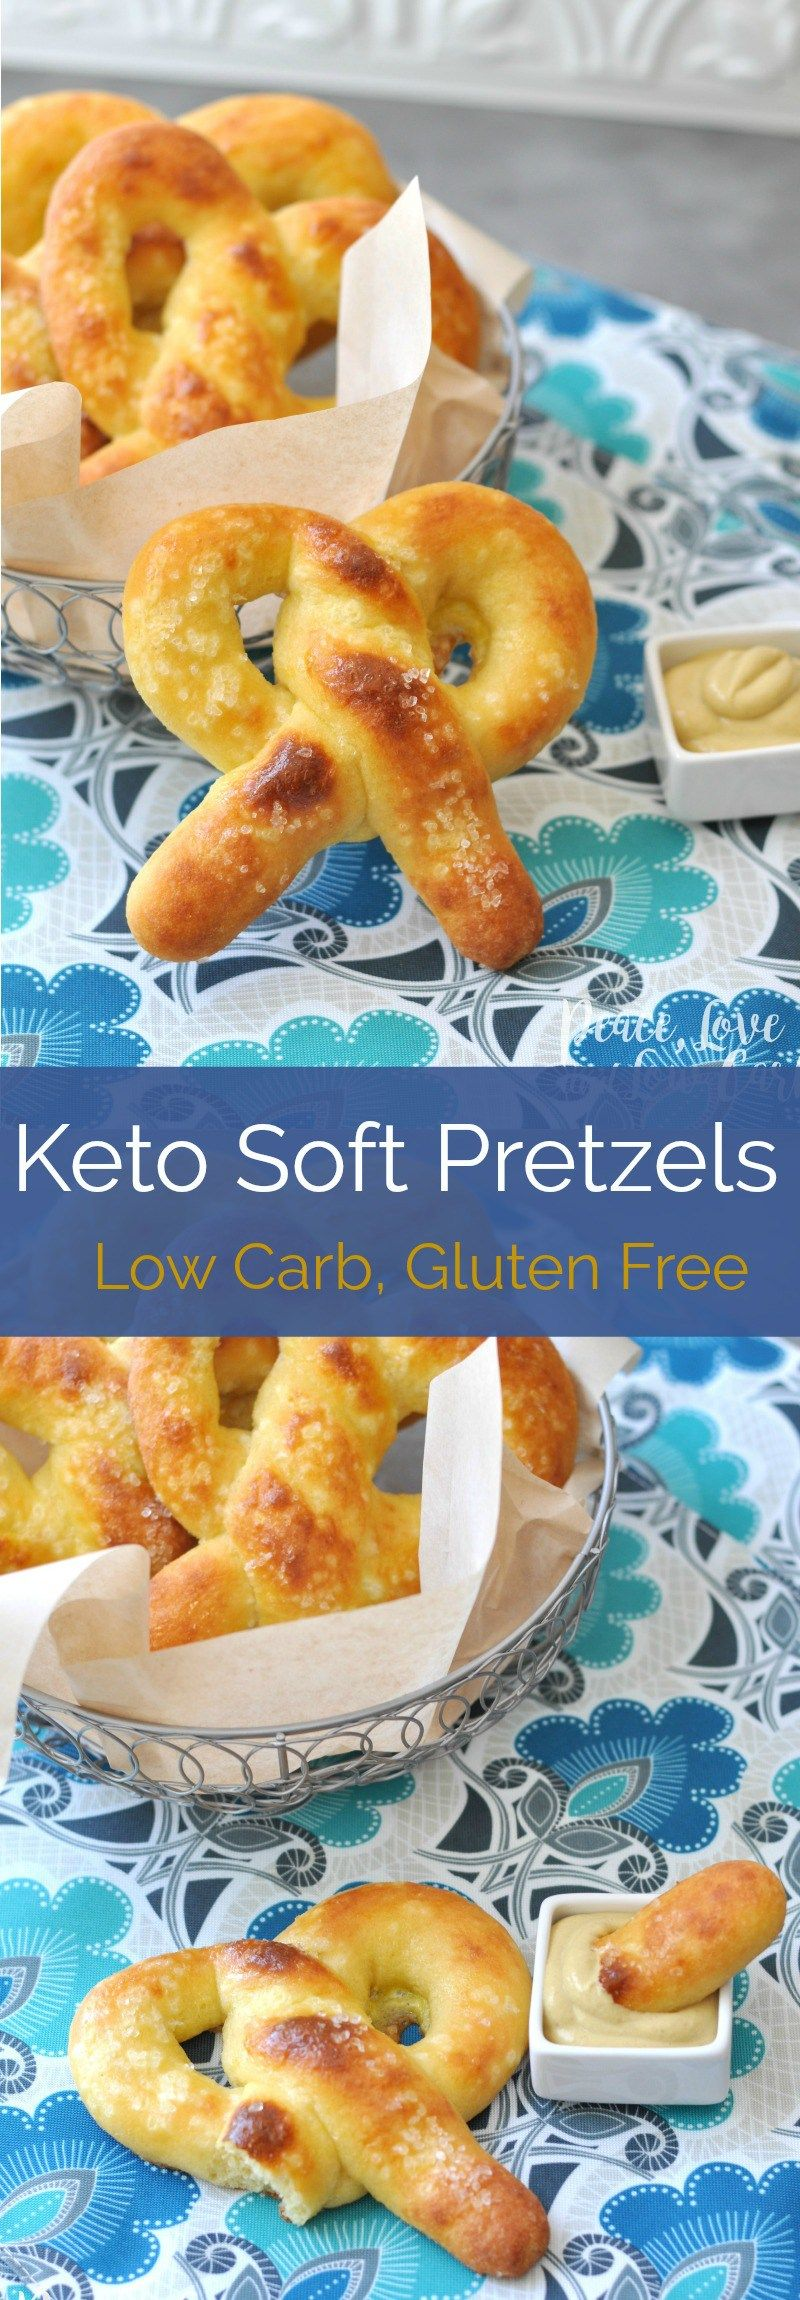 Keto soft pretzels peace love and low carb keto pinterest keto soft pretzels peace love and low carb forumfinder Image collections